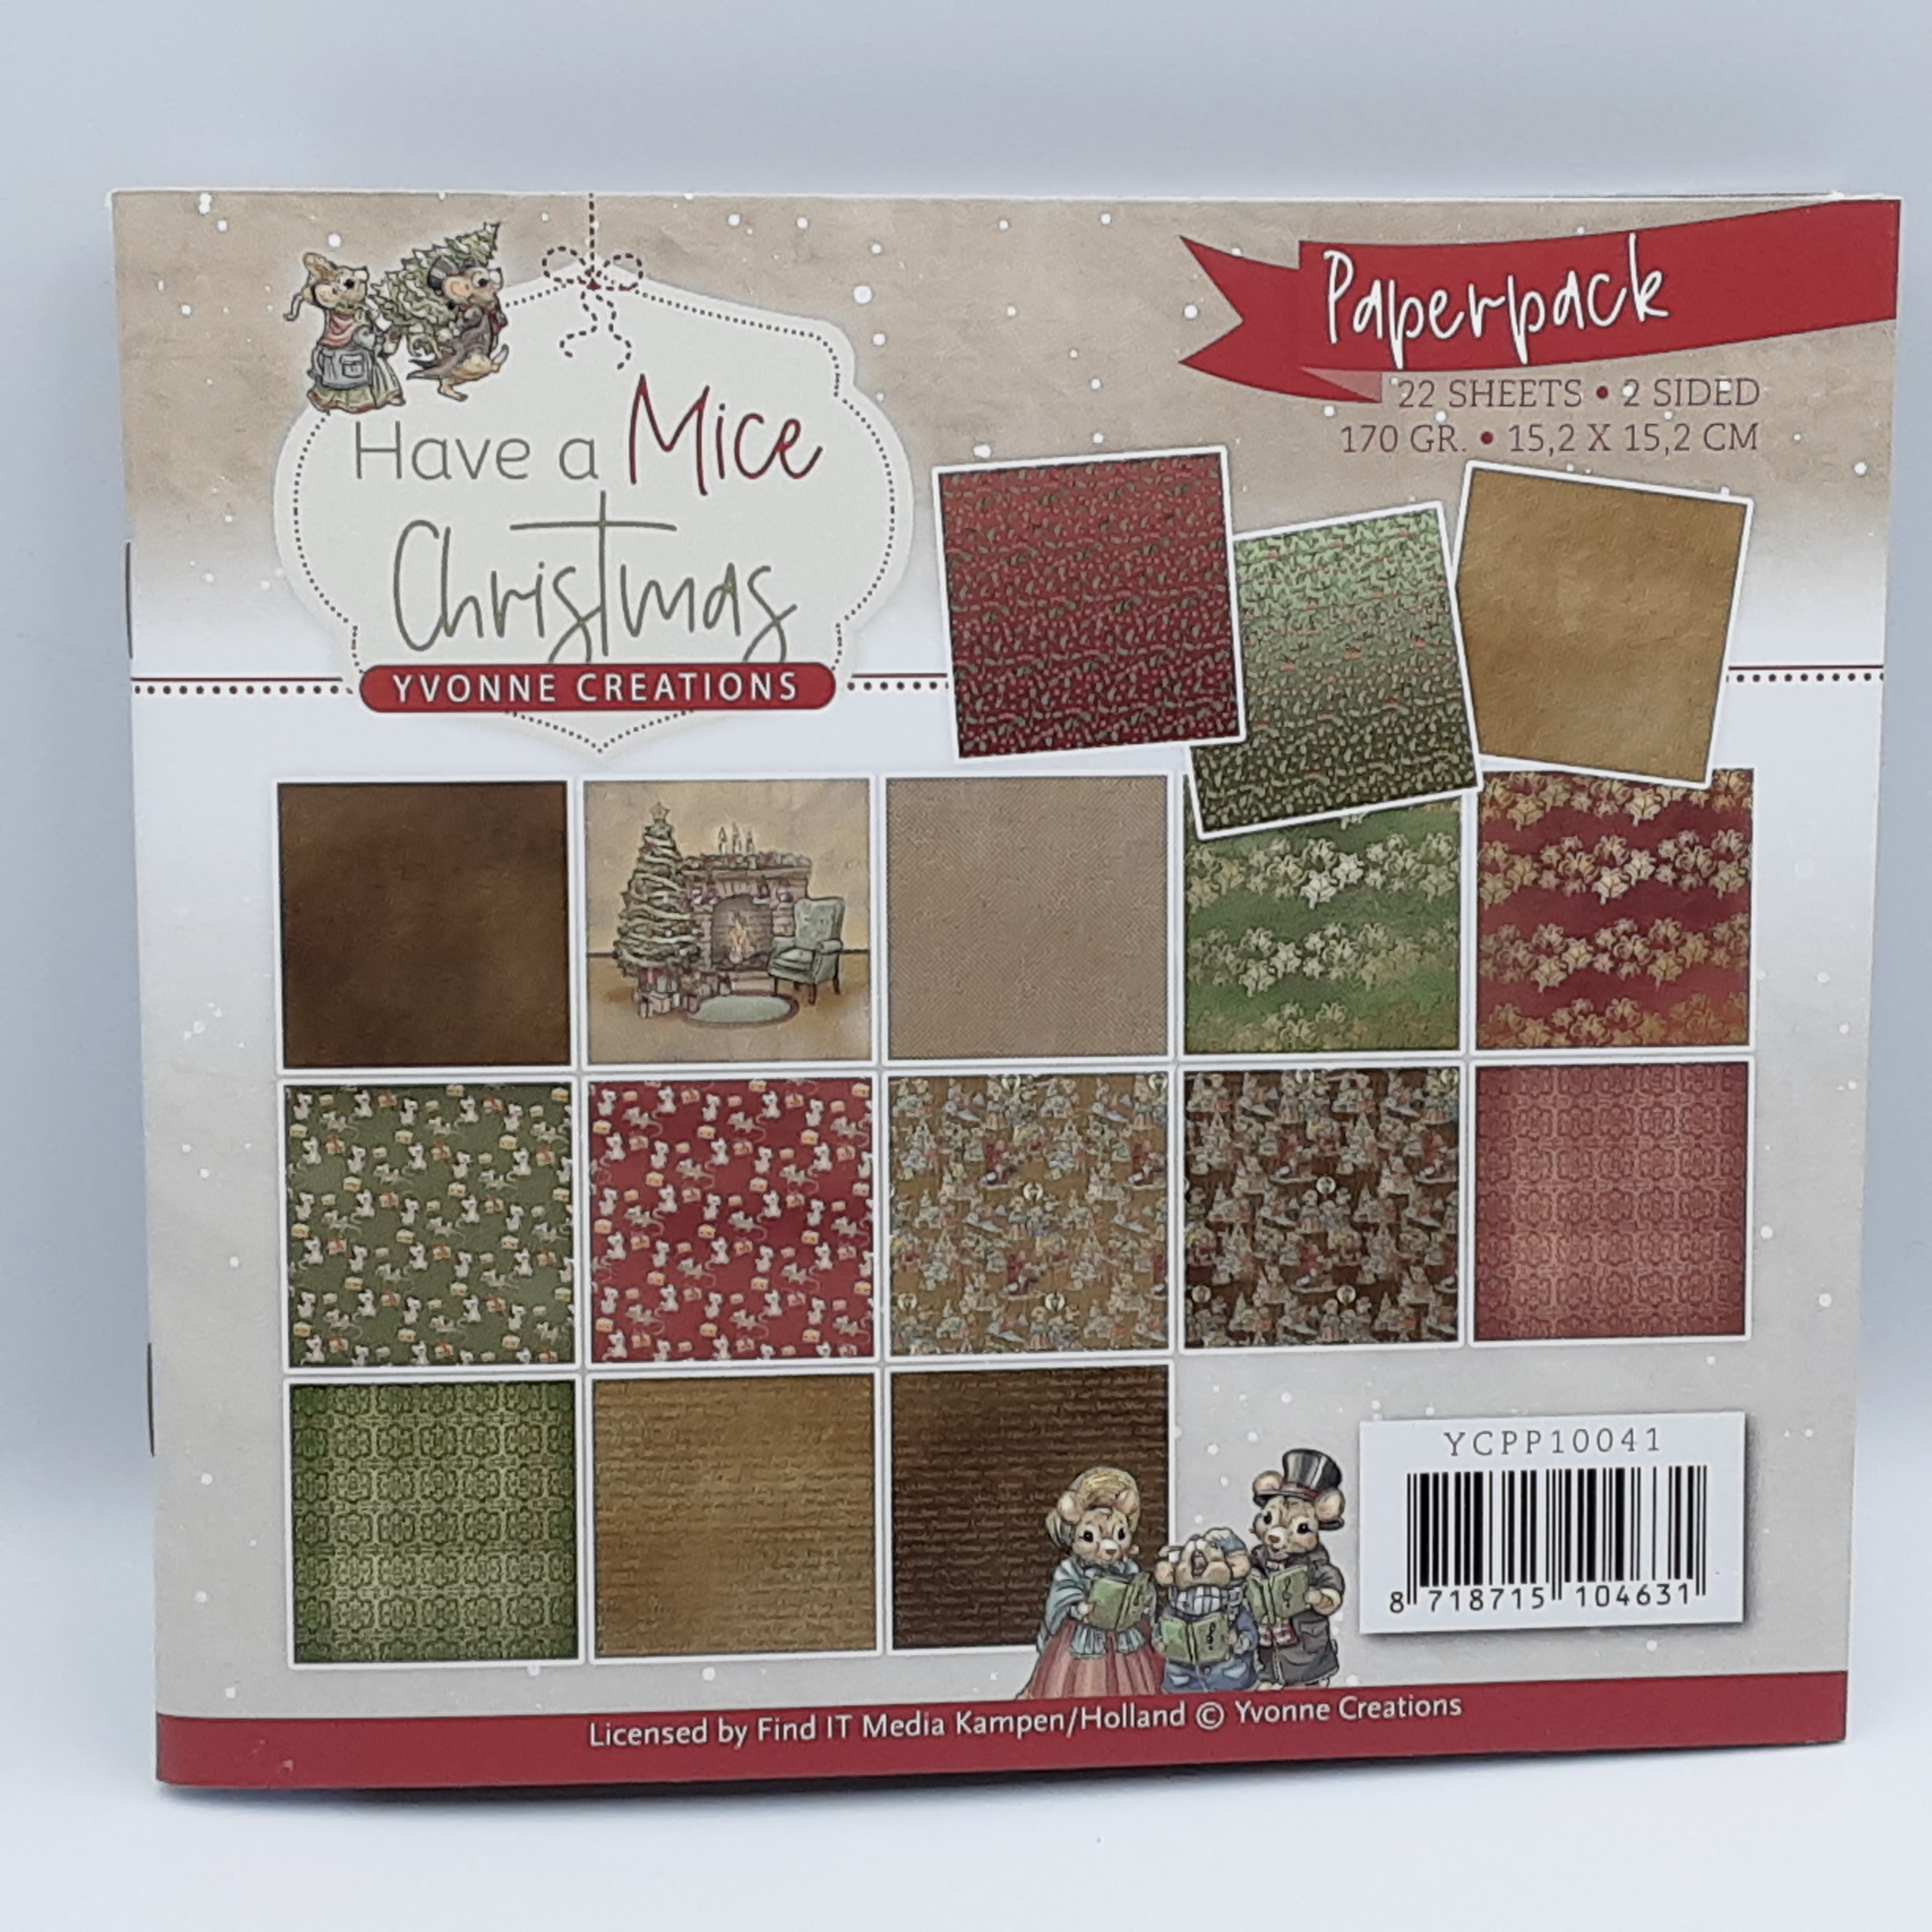 Have a mice Christmas paperpack